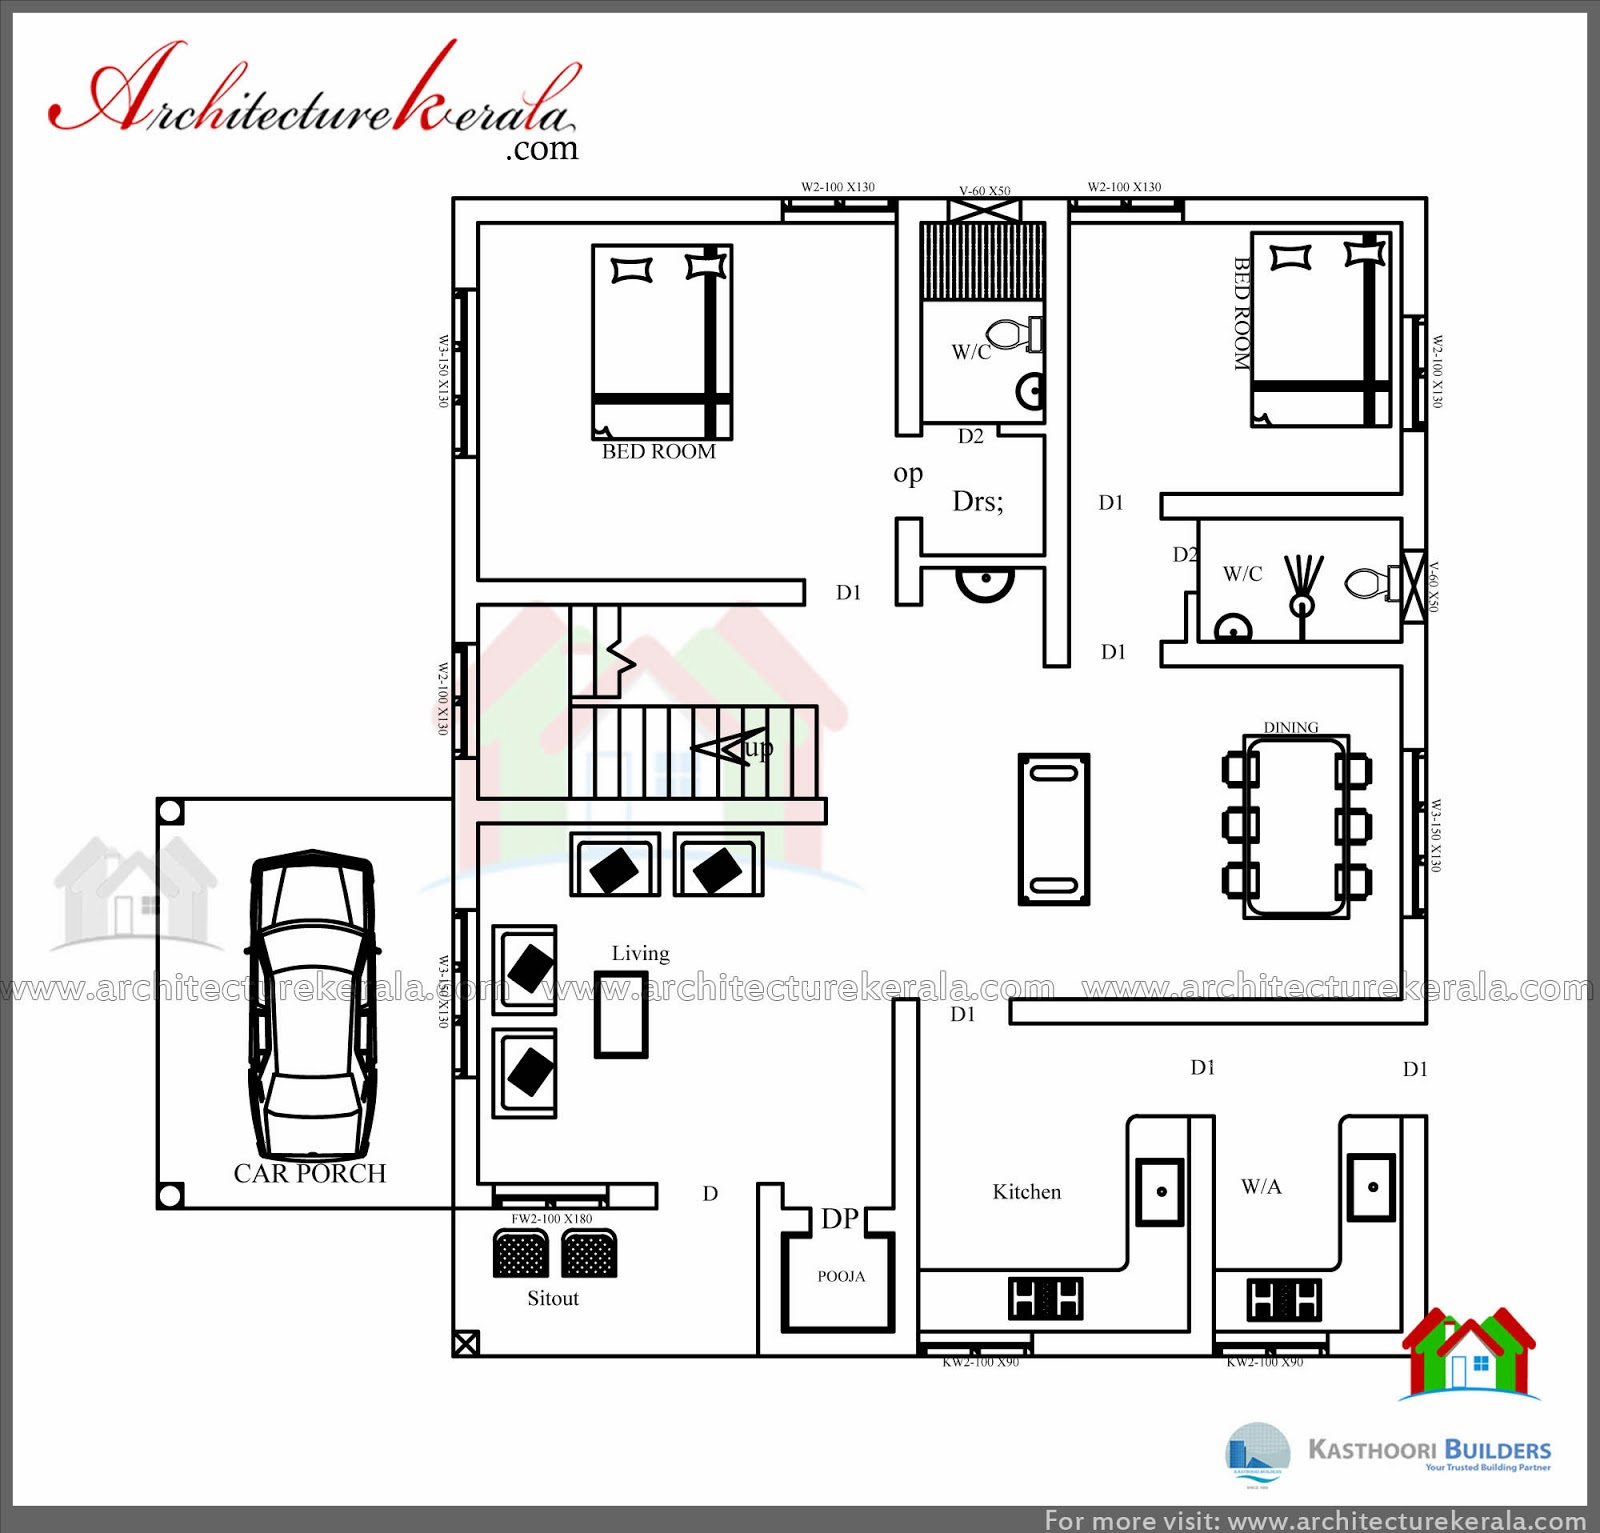 Low cost 3 bedroom kerala house plan with elevation free for 3 bedroom plan in kerala